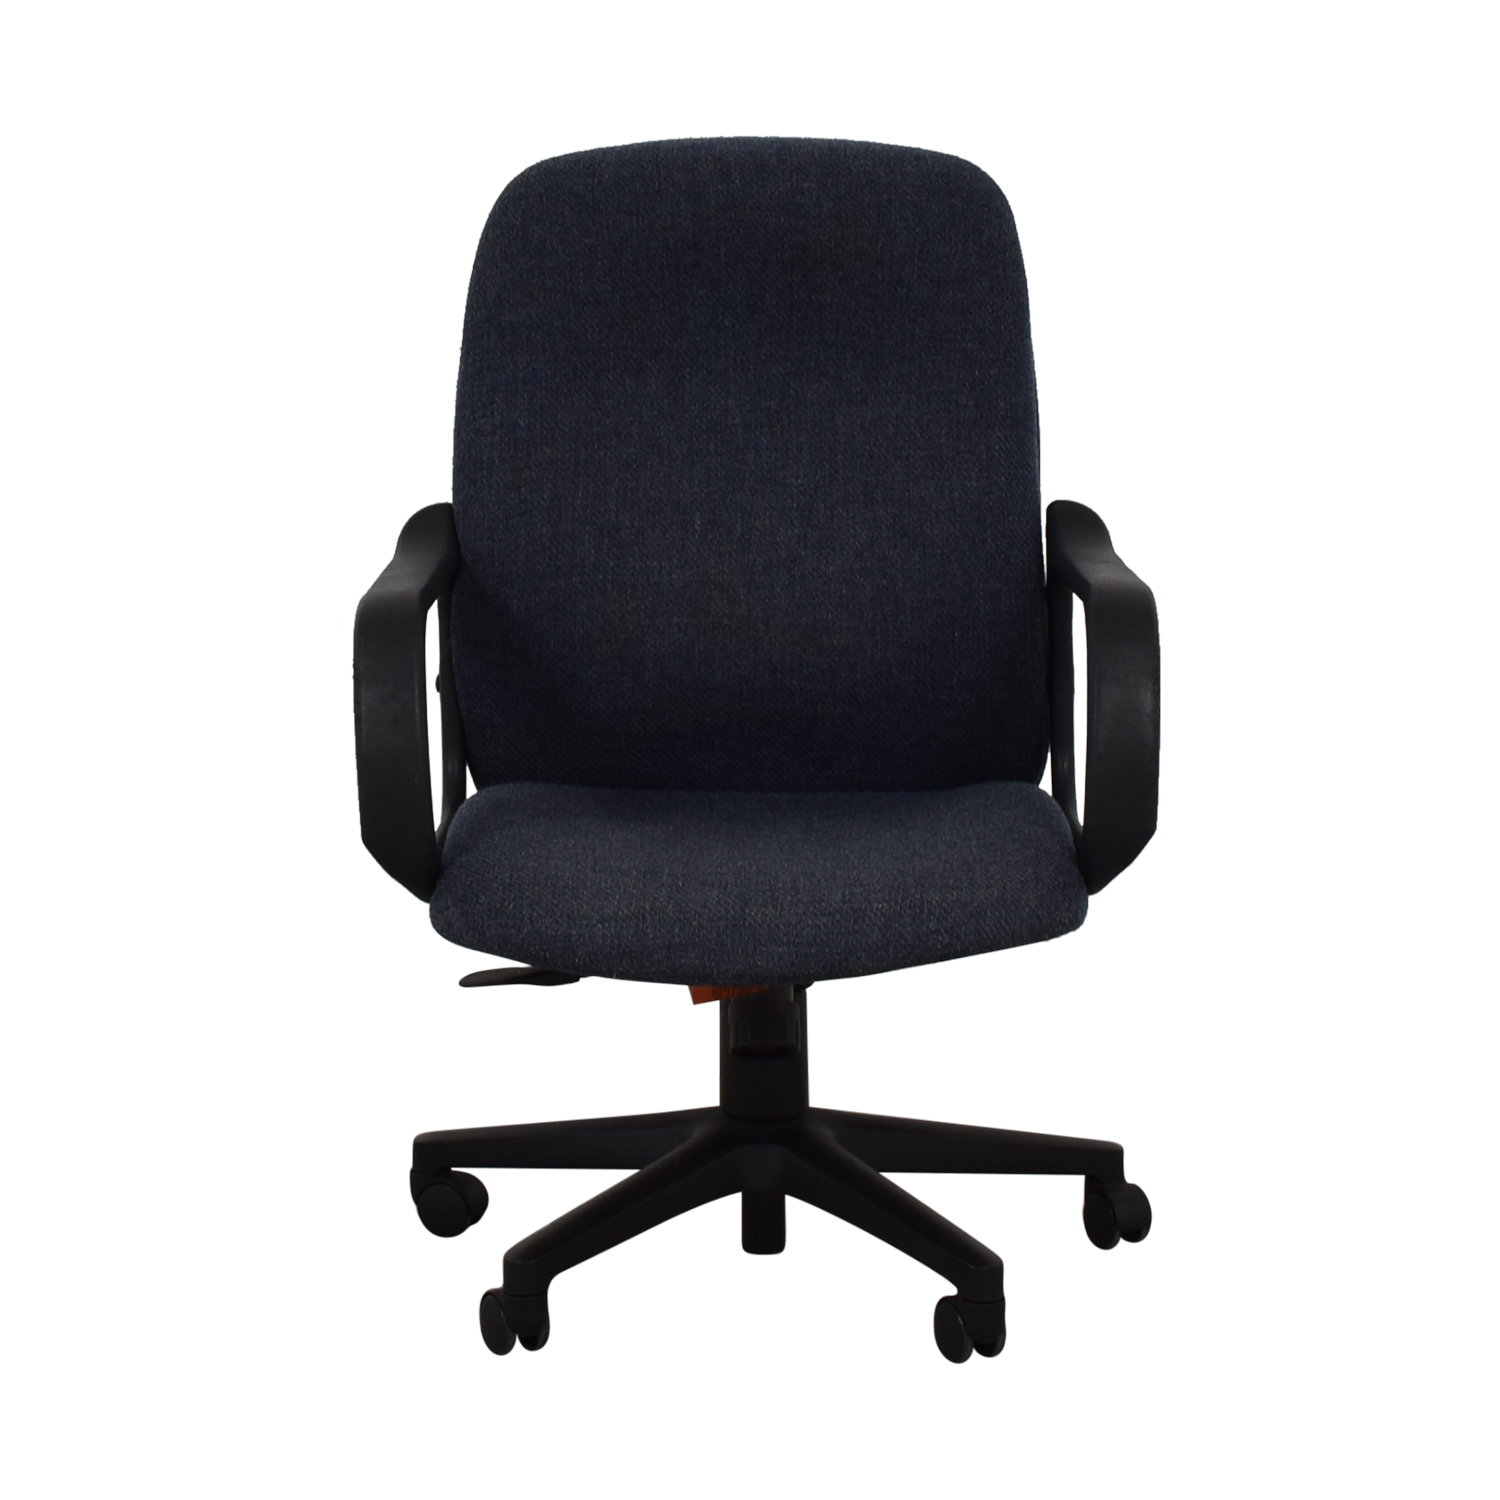 HON HON Grey High-Back Executive Swivel Office Chair price